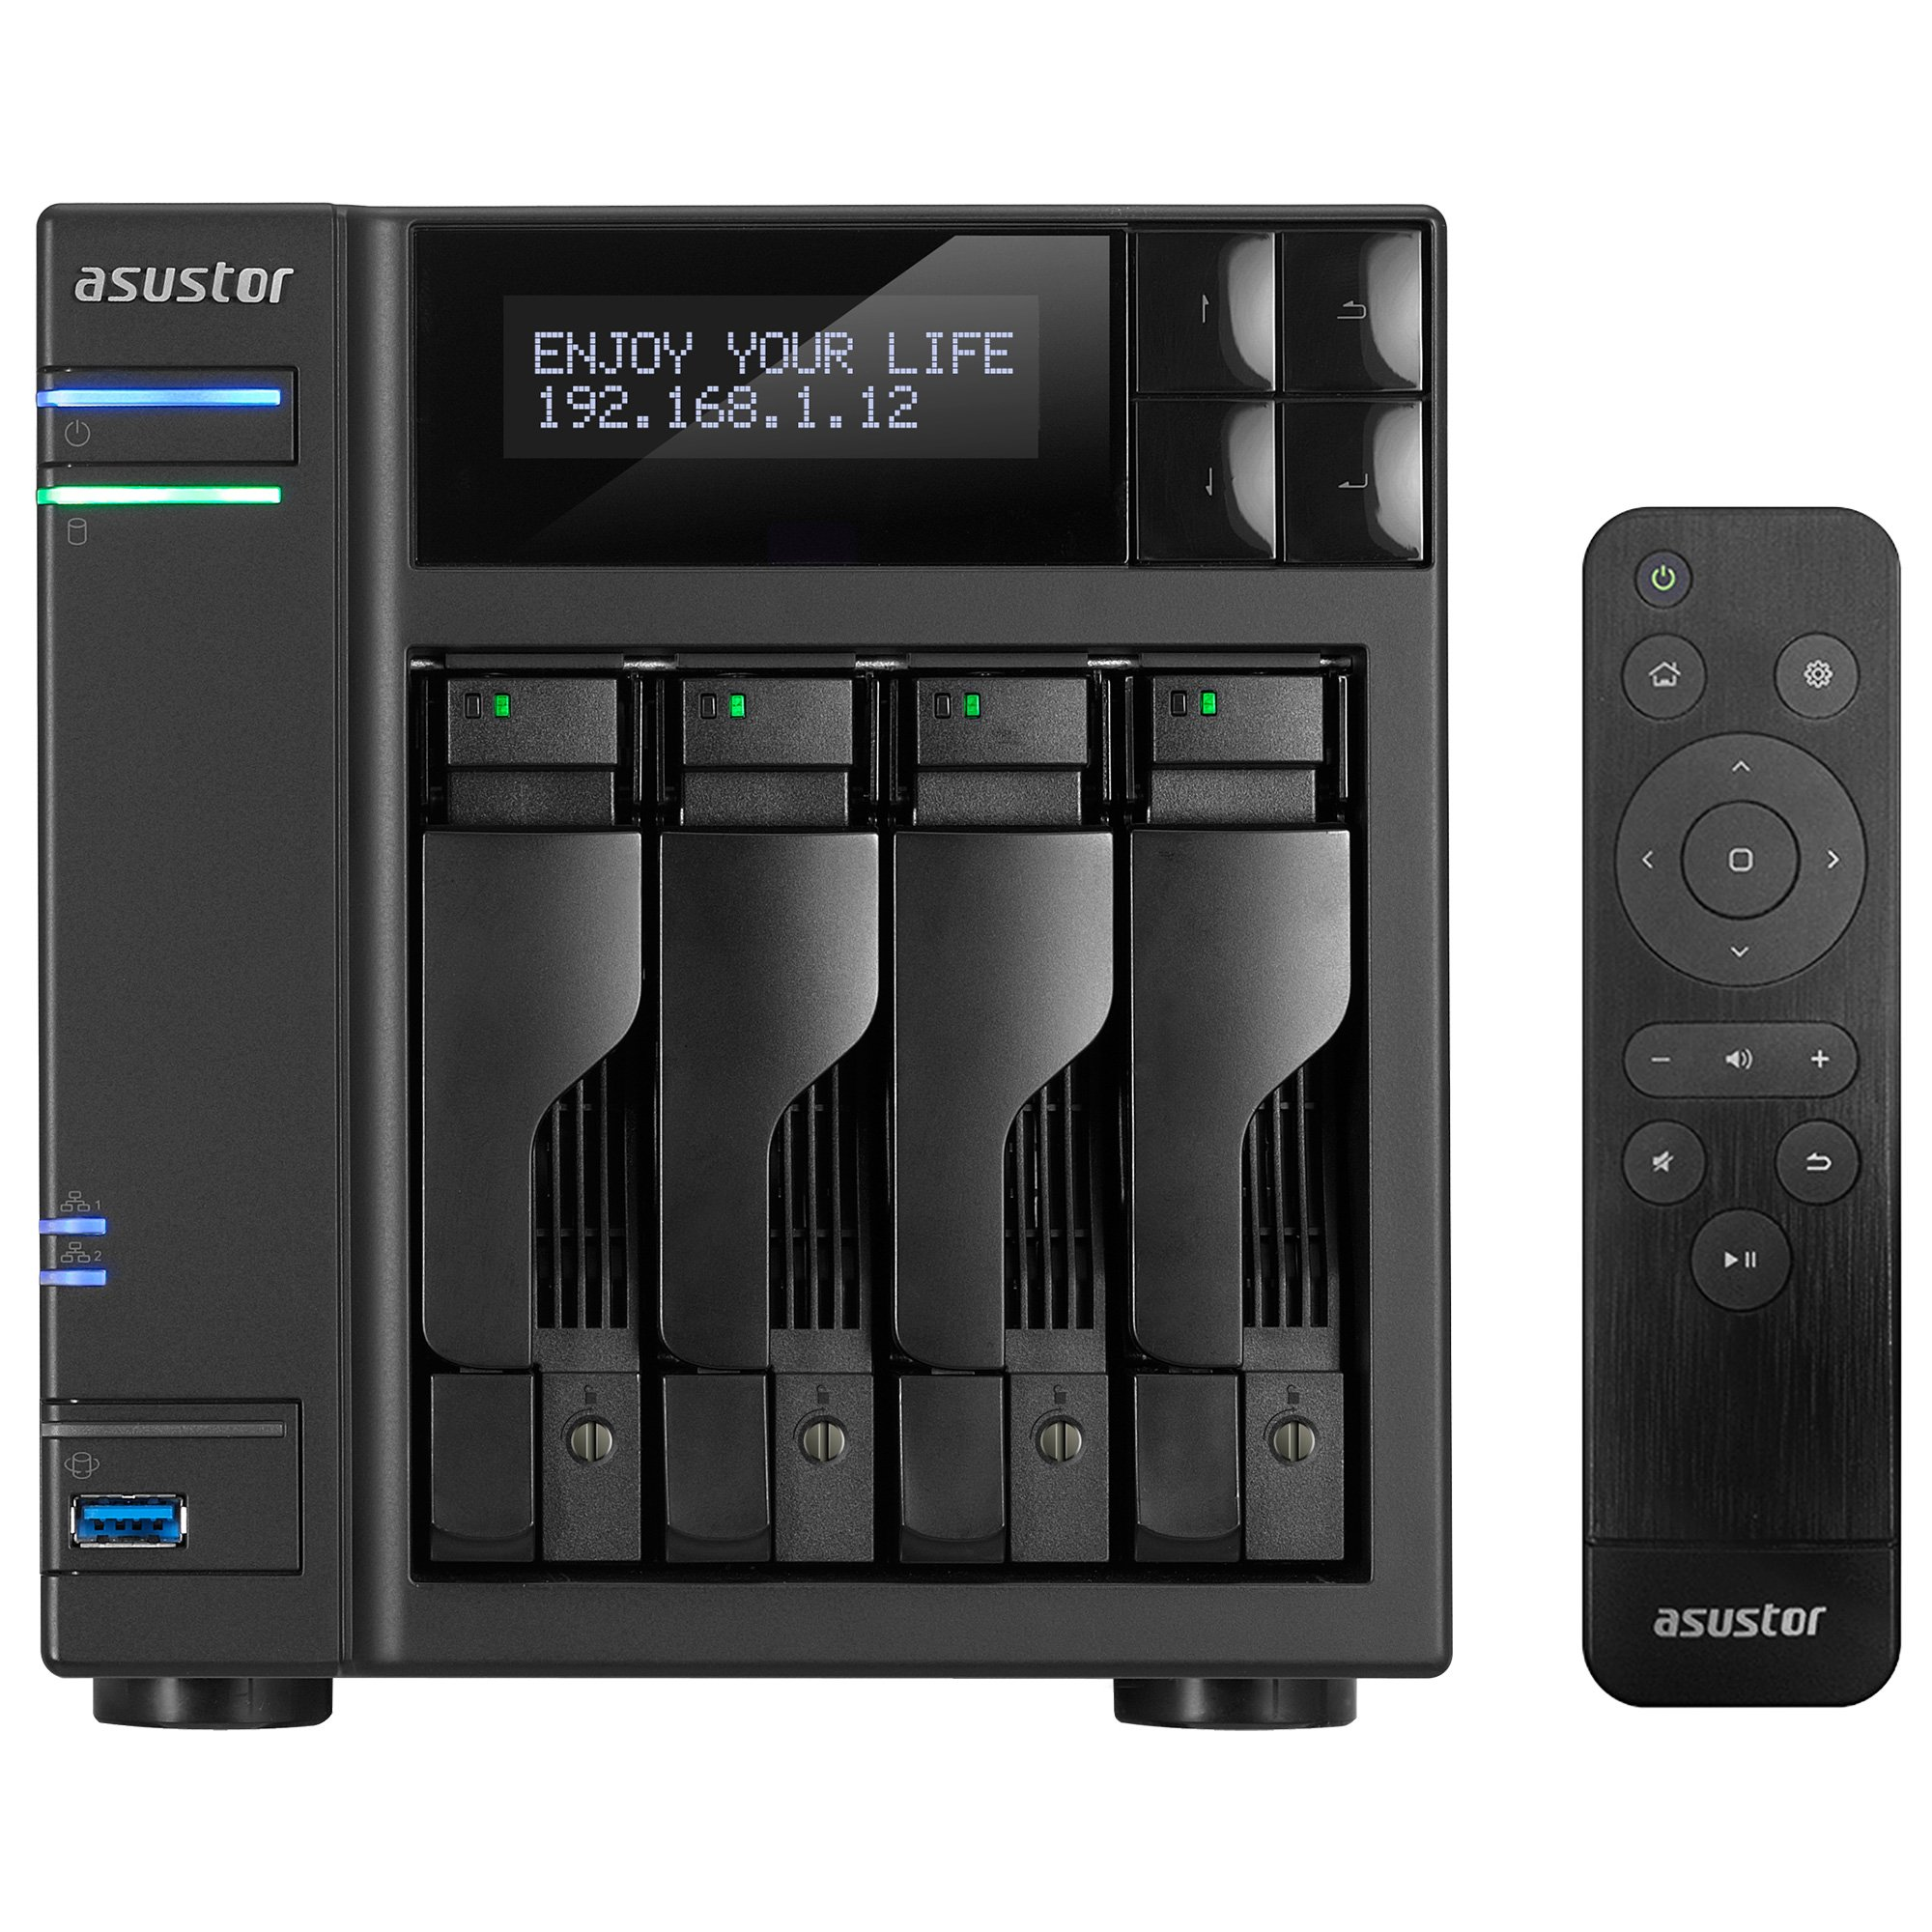 Asustor AS7004T-i5, 4-Bay NAS (Diskless), Intel 3.0GHz Quad-Core, 8GB RAM, Includes AS-RC13 Multimedia Remote